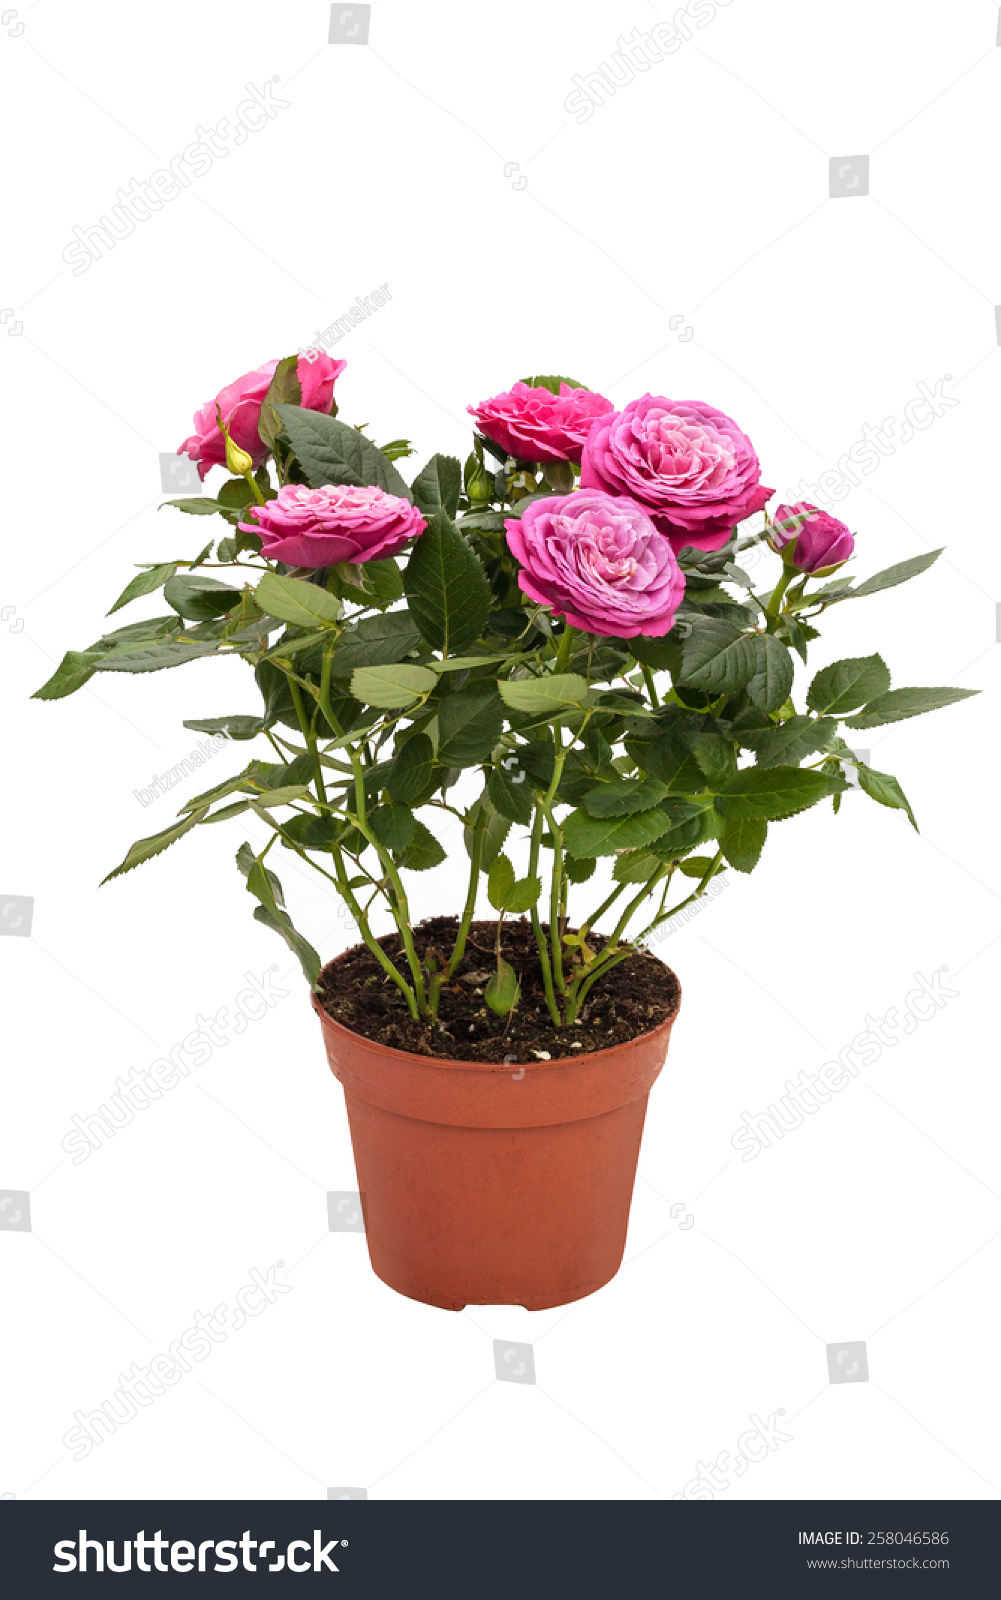 Houseplant Mini Rose Small Pink Flowers Stock Photo Edit Now